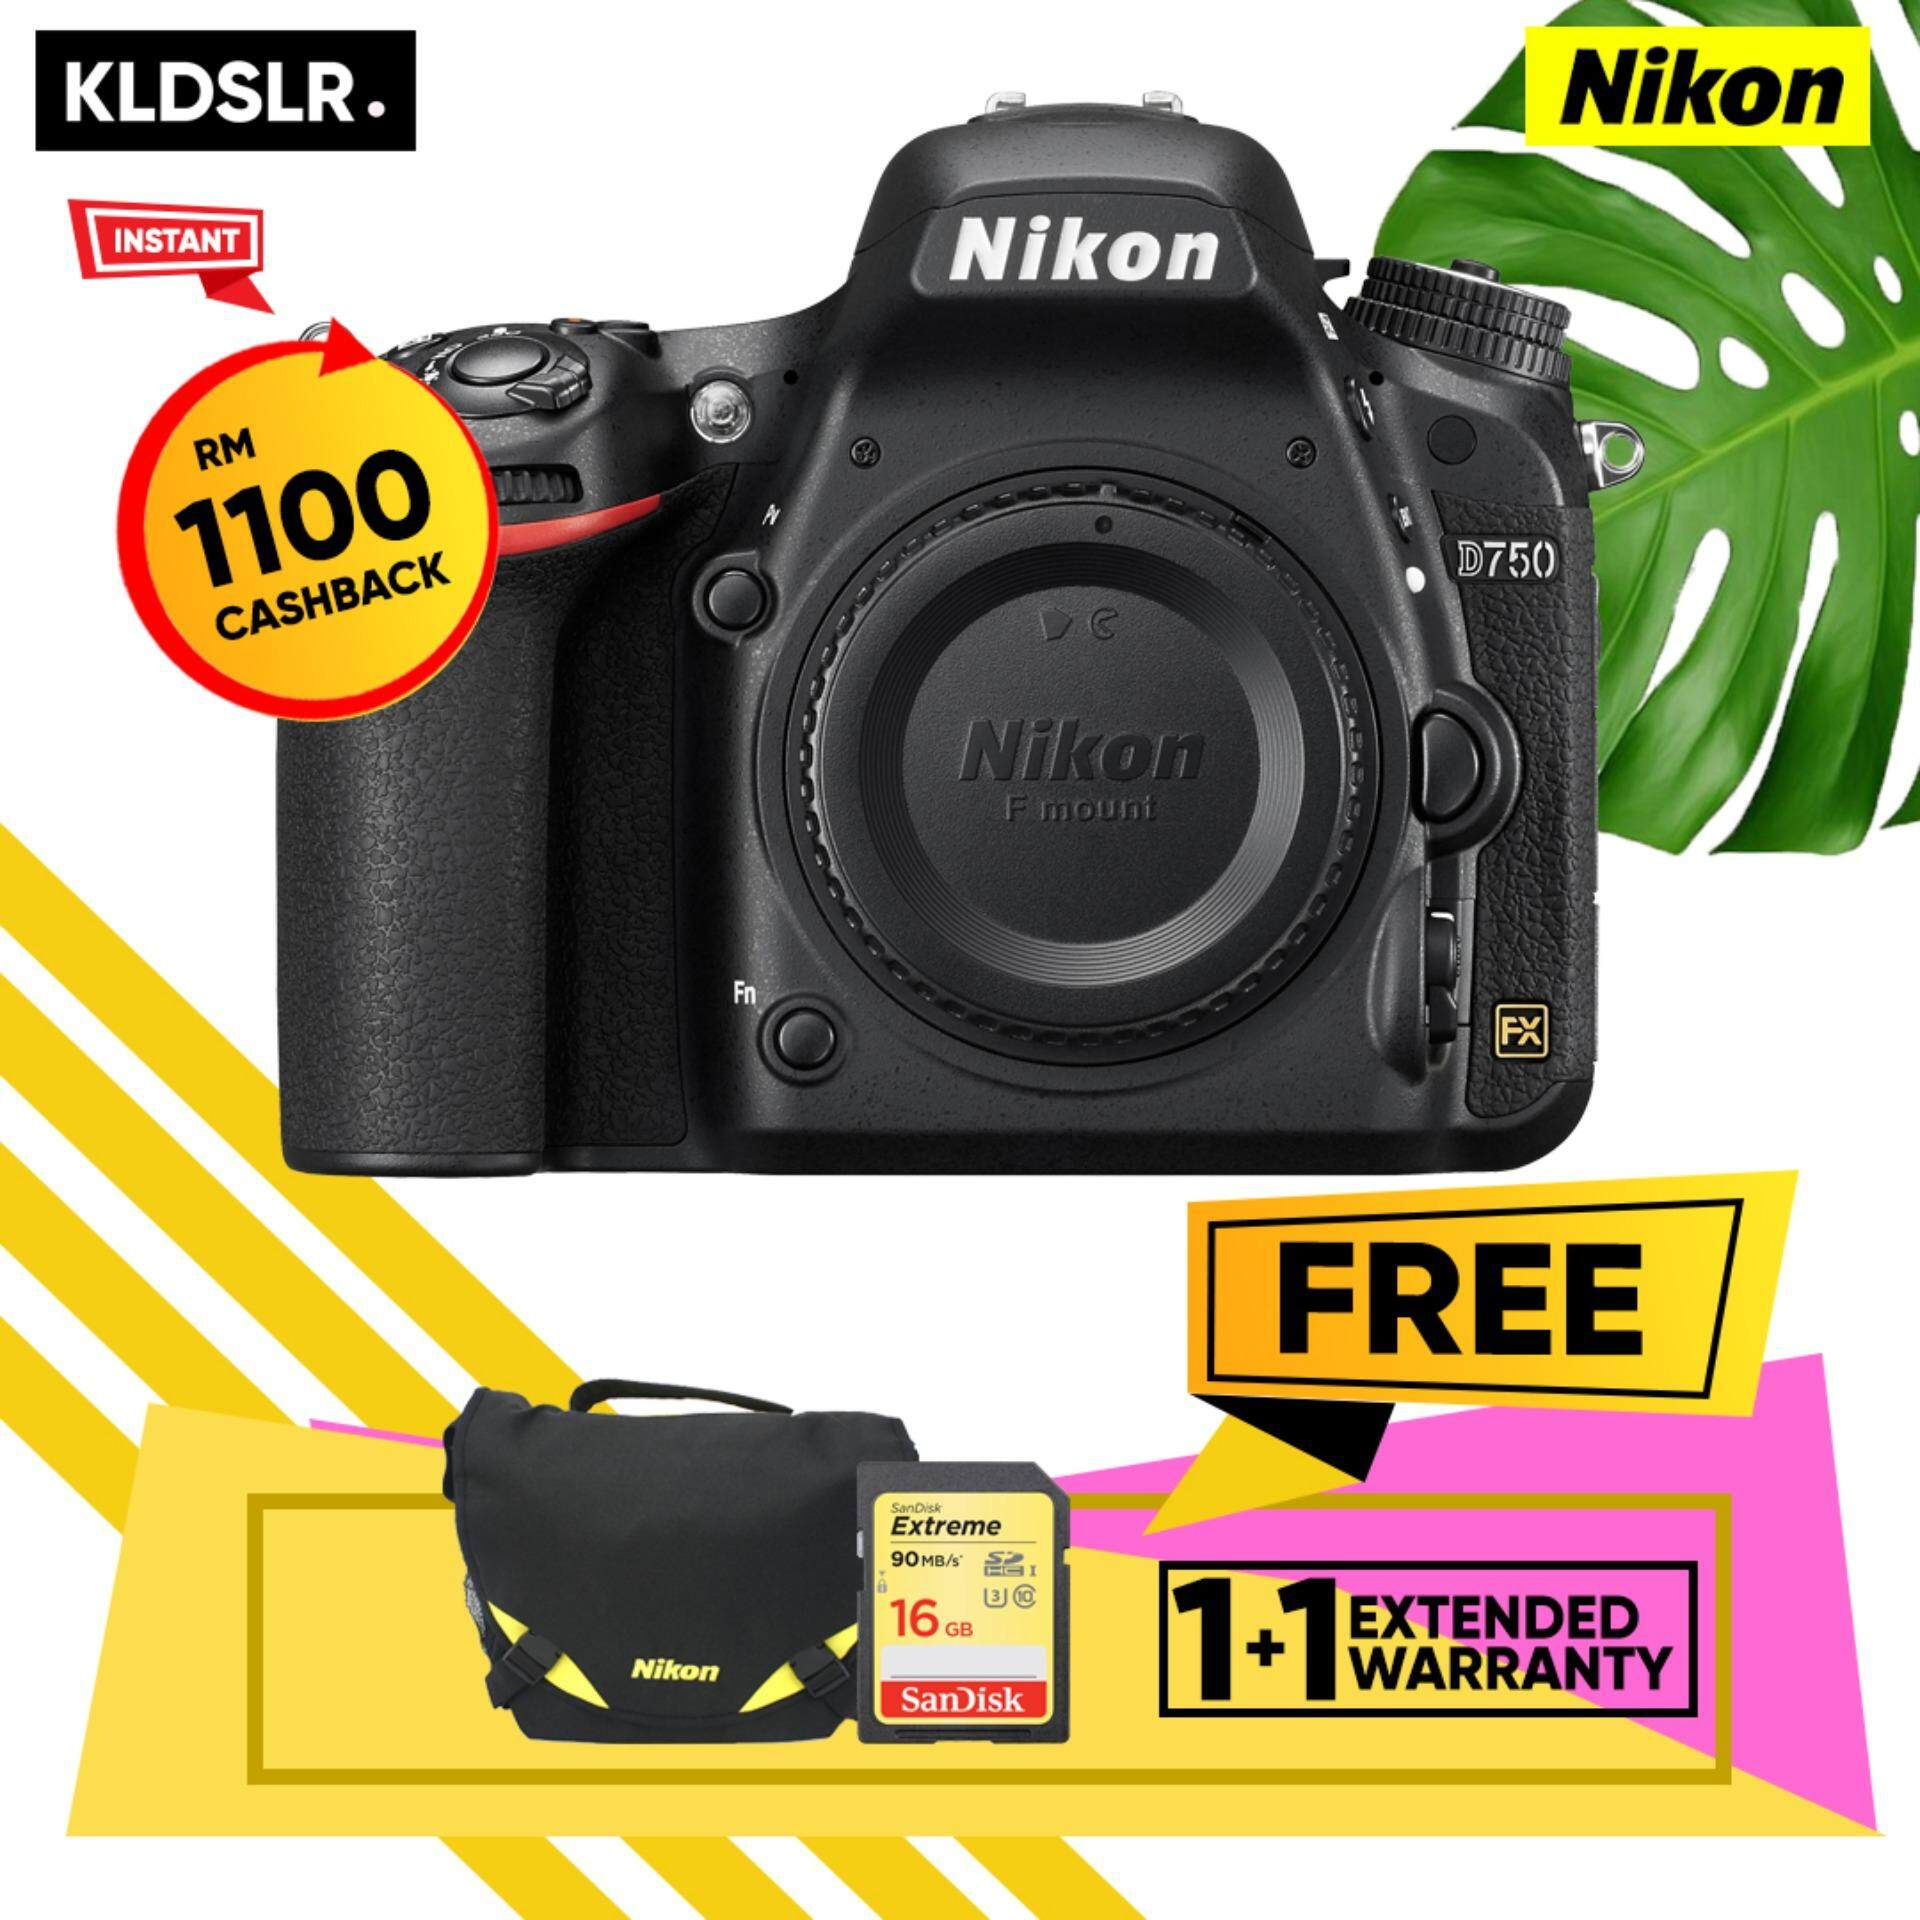 Nikon D750 Dslr Camera Body Only Sandisk 16gb Extreme Sd Card Nikon Bag 1 1 Year Nikon Malaysia Warranty